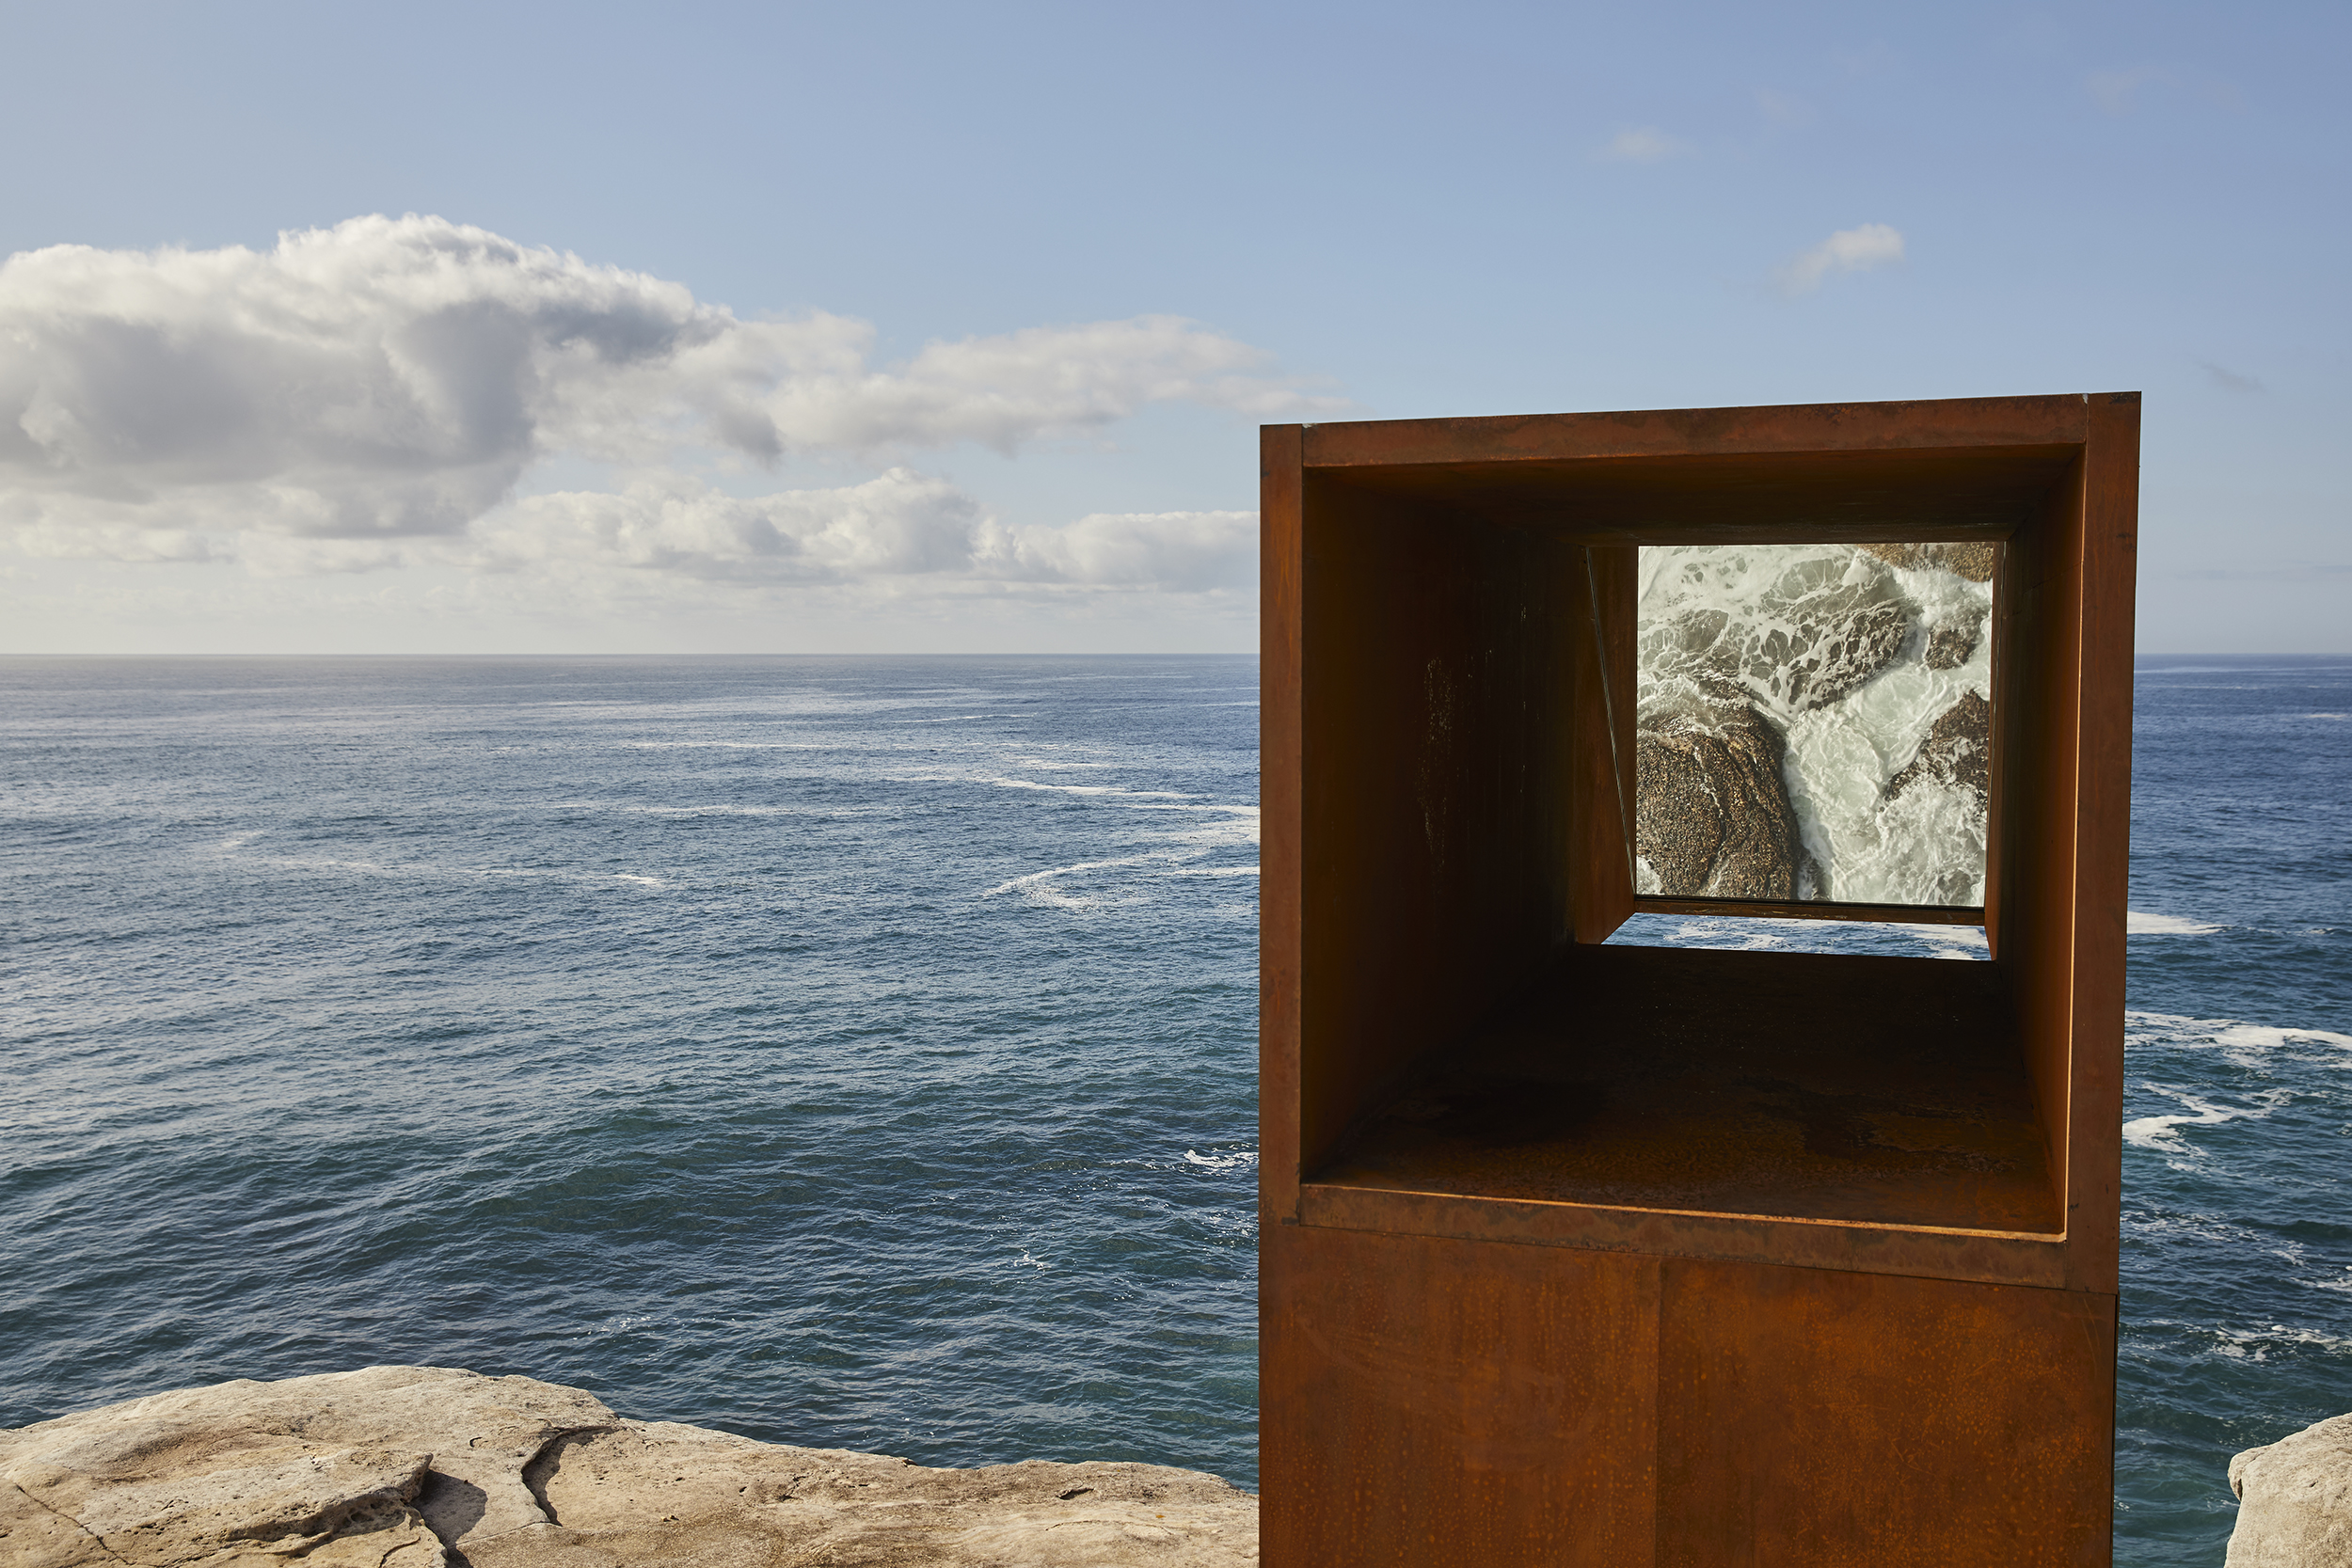 UNSW Built Environment graduate Joel Adler's work Viewfinder is featured in this year's Sculpture by the Sea.